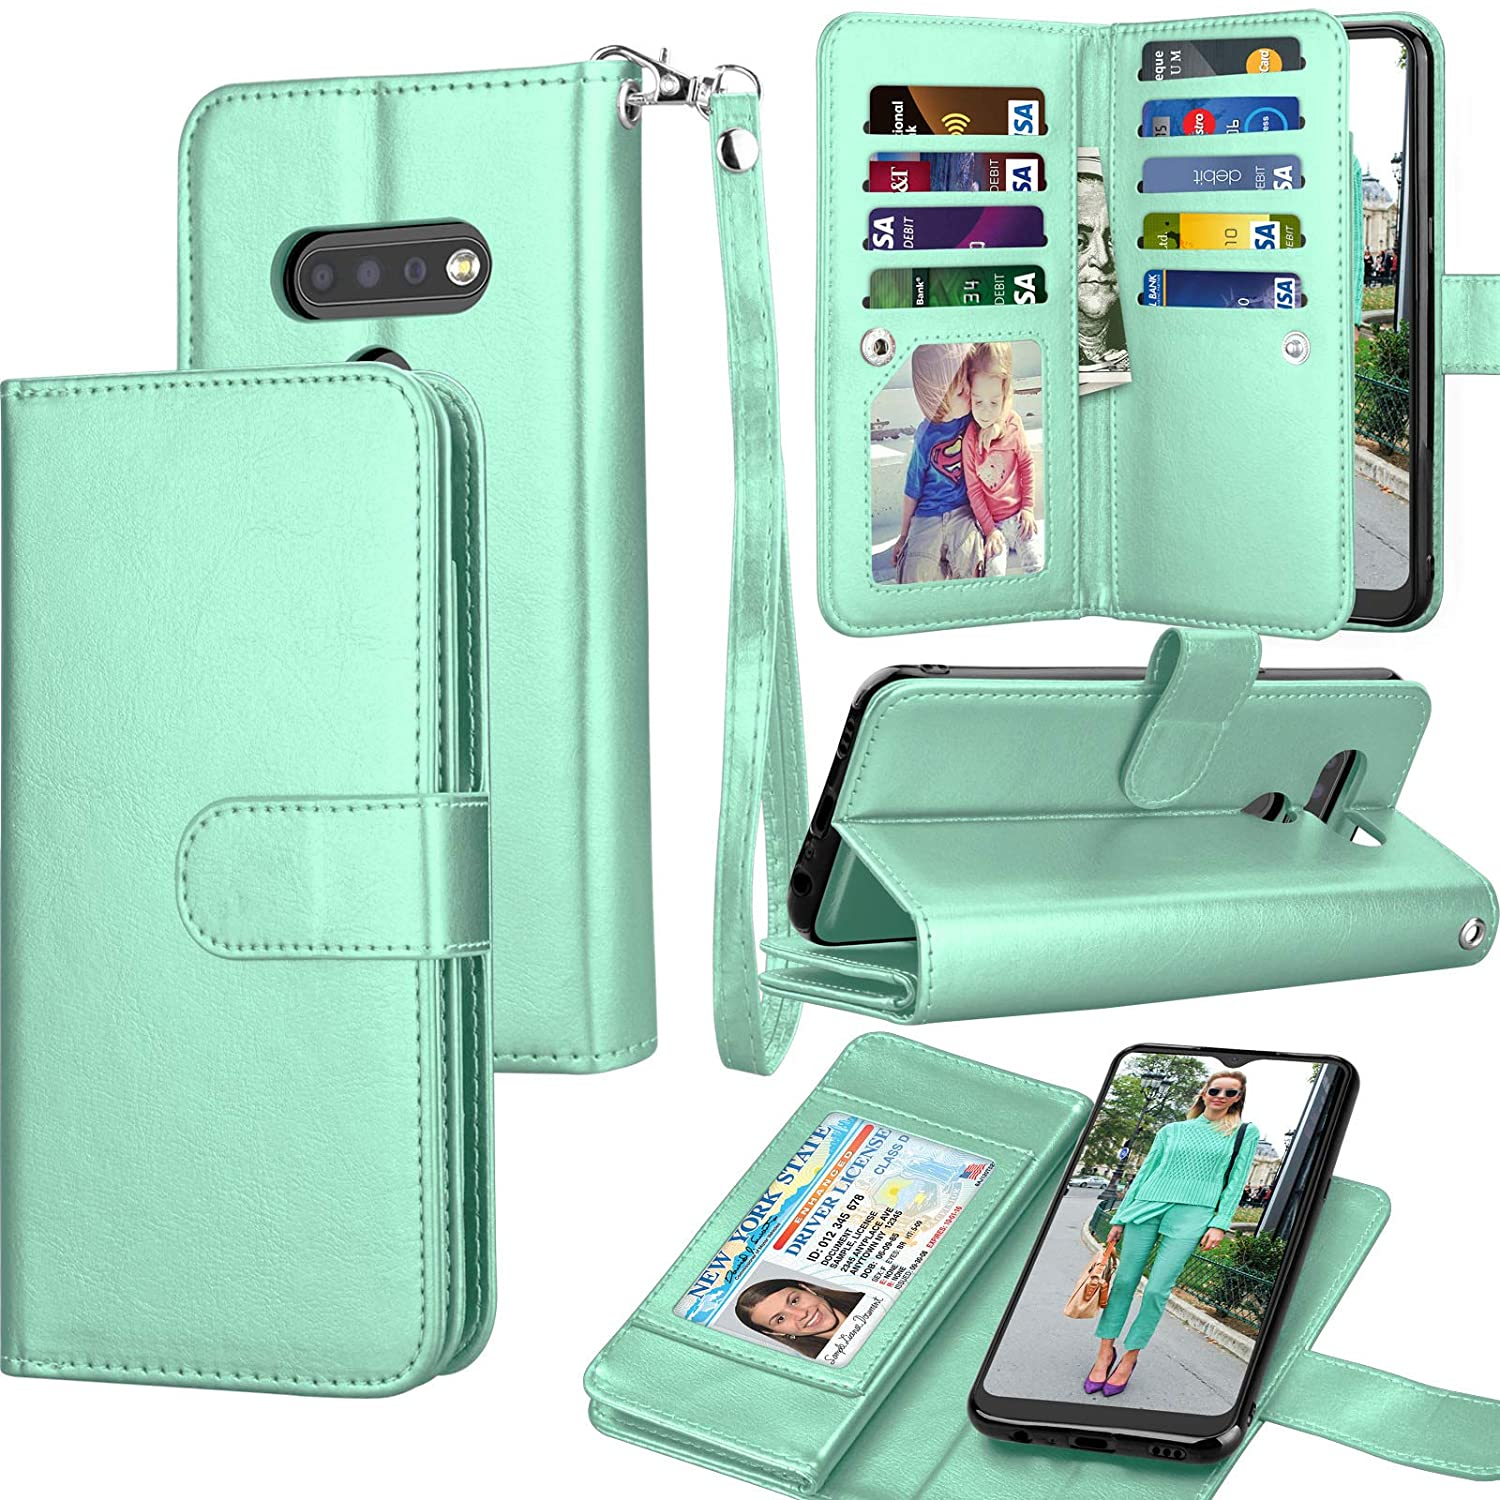 Tekcoo LG K51 Case, 2020 LG Q51 / LG Reflect / K51 Wallet Case, Luxury PU Leather ID Cash Credit Card Slots Holder Carrying Pouch Folio Flip Cover [Detachable Magnetic Hard Cases] Lanyard - Turquoise